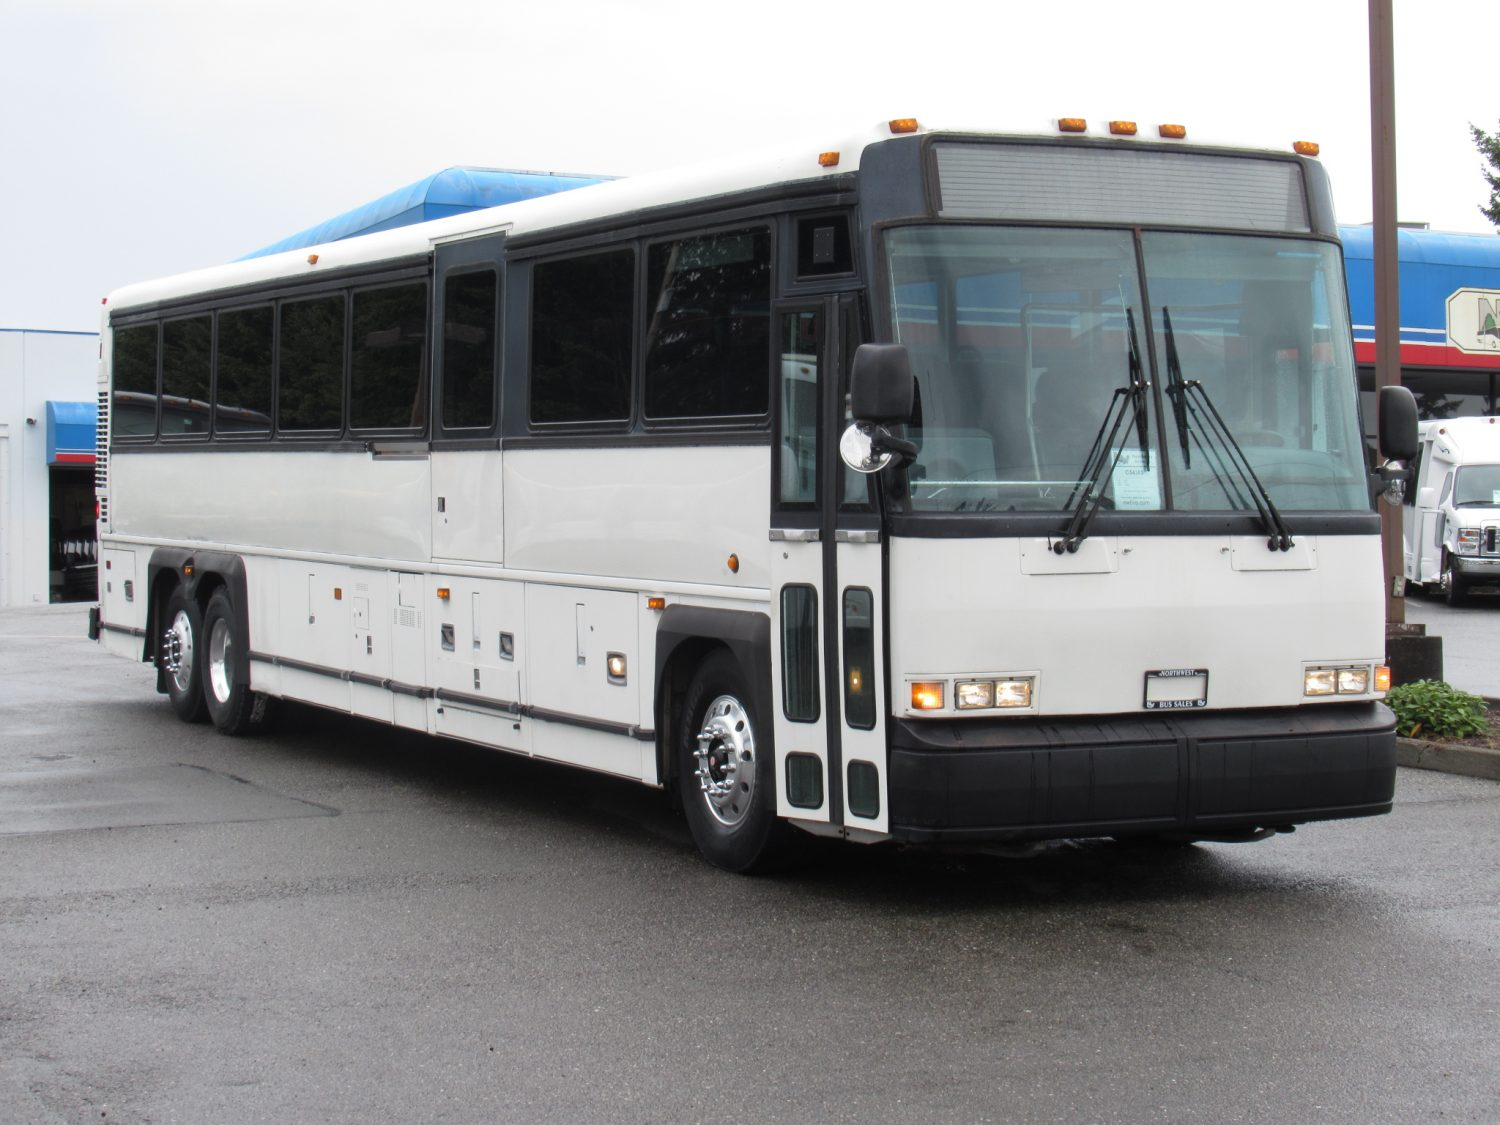 Used & New Coach Buses for Sale - Big Passenger Buses | Las Vegas